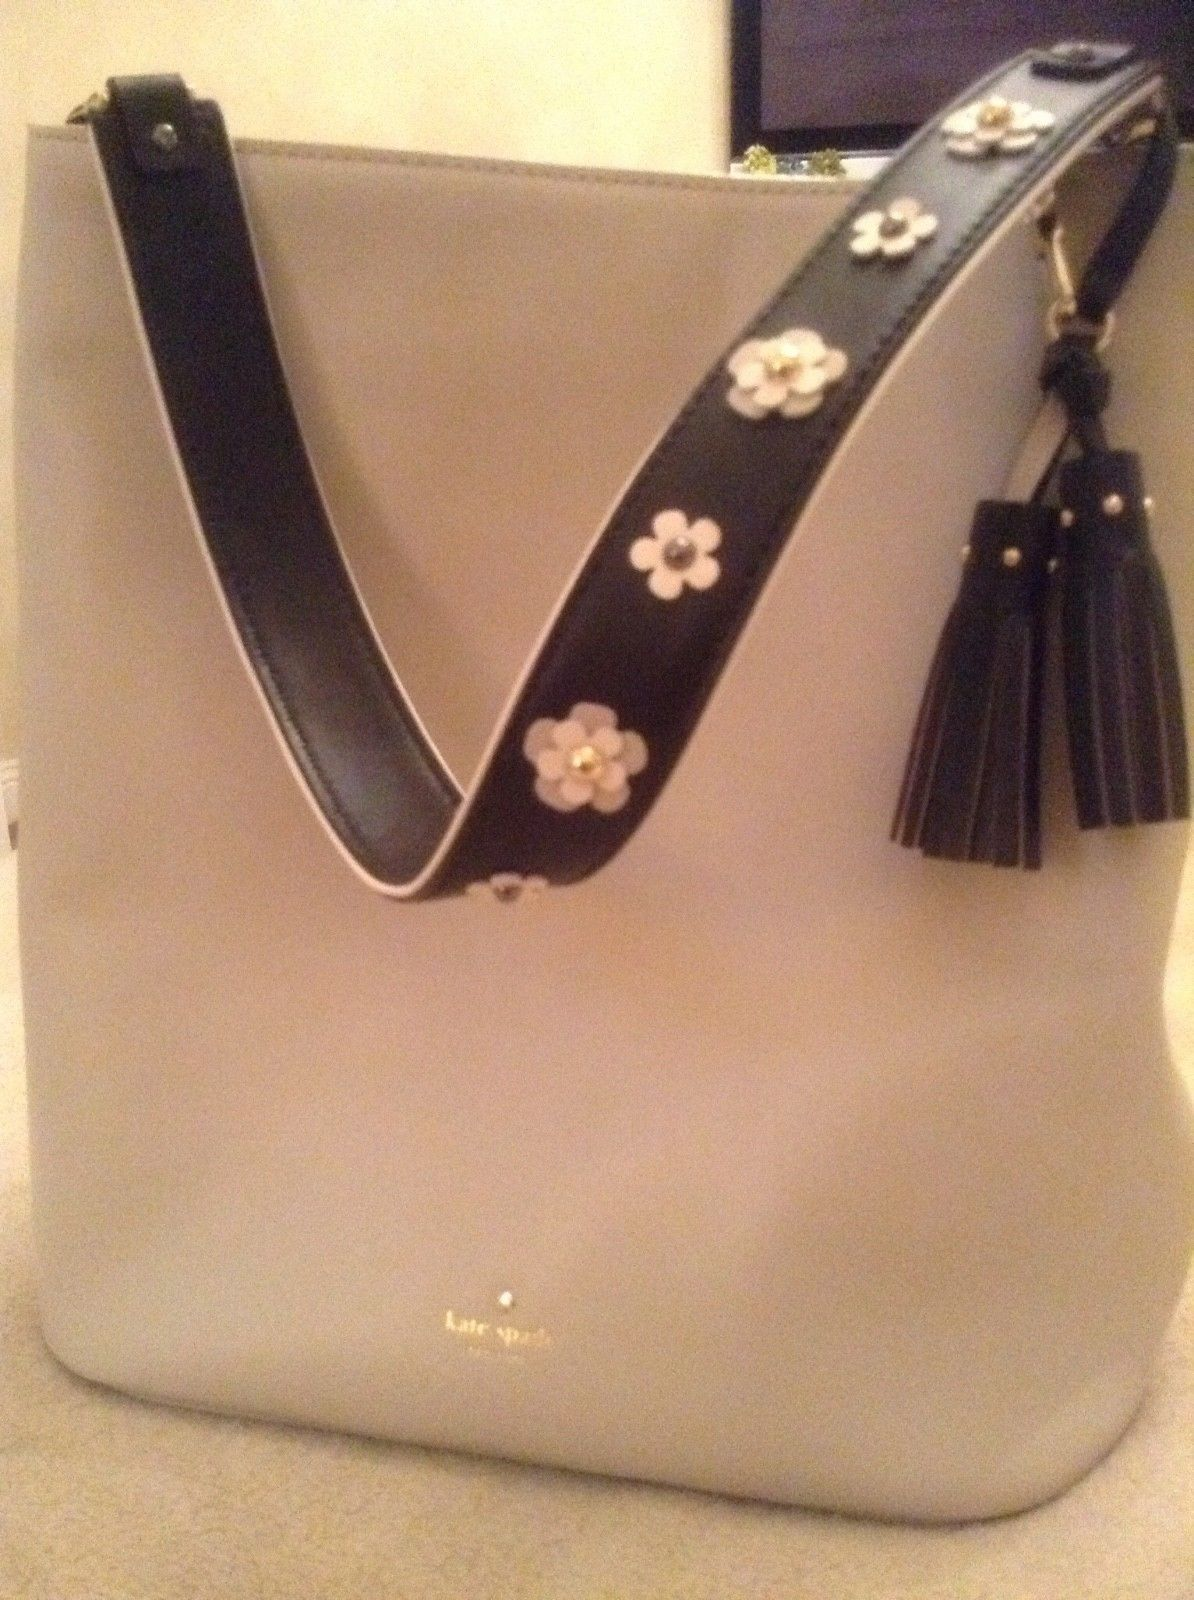 kate spade tote - beige with black strap/ flowers- perfect condition!